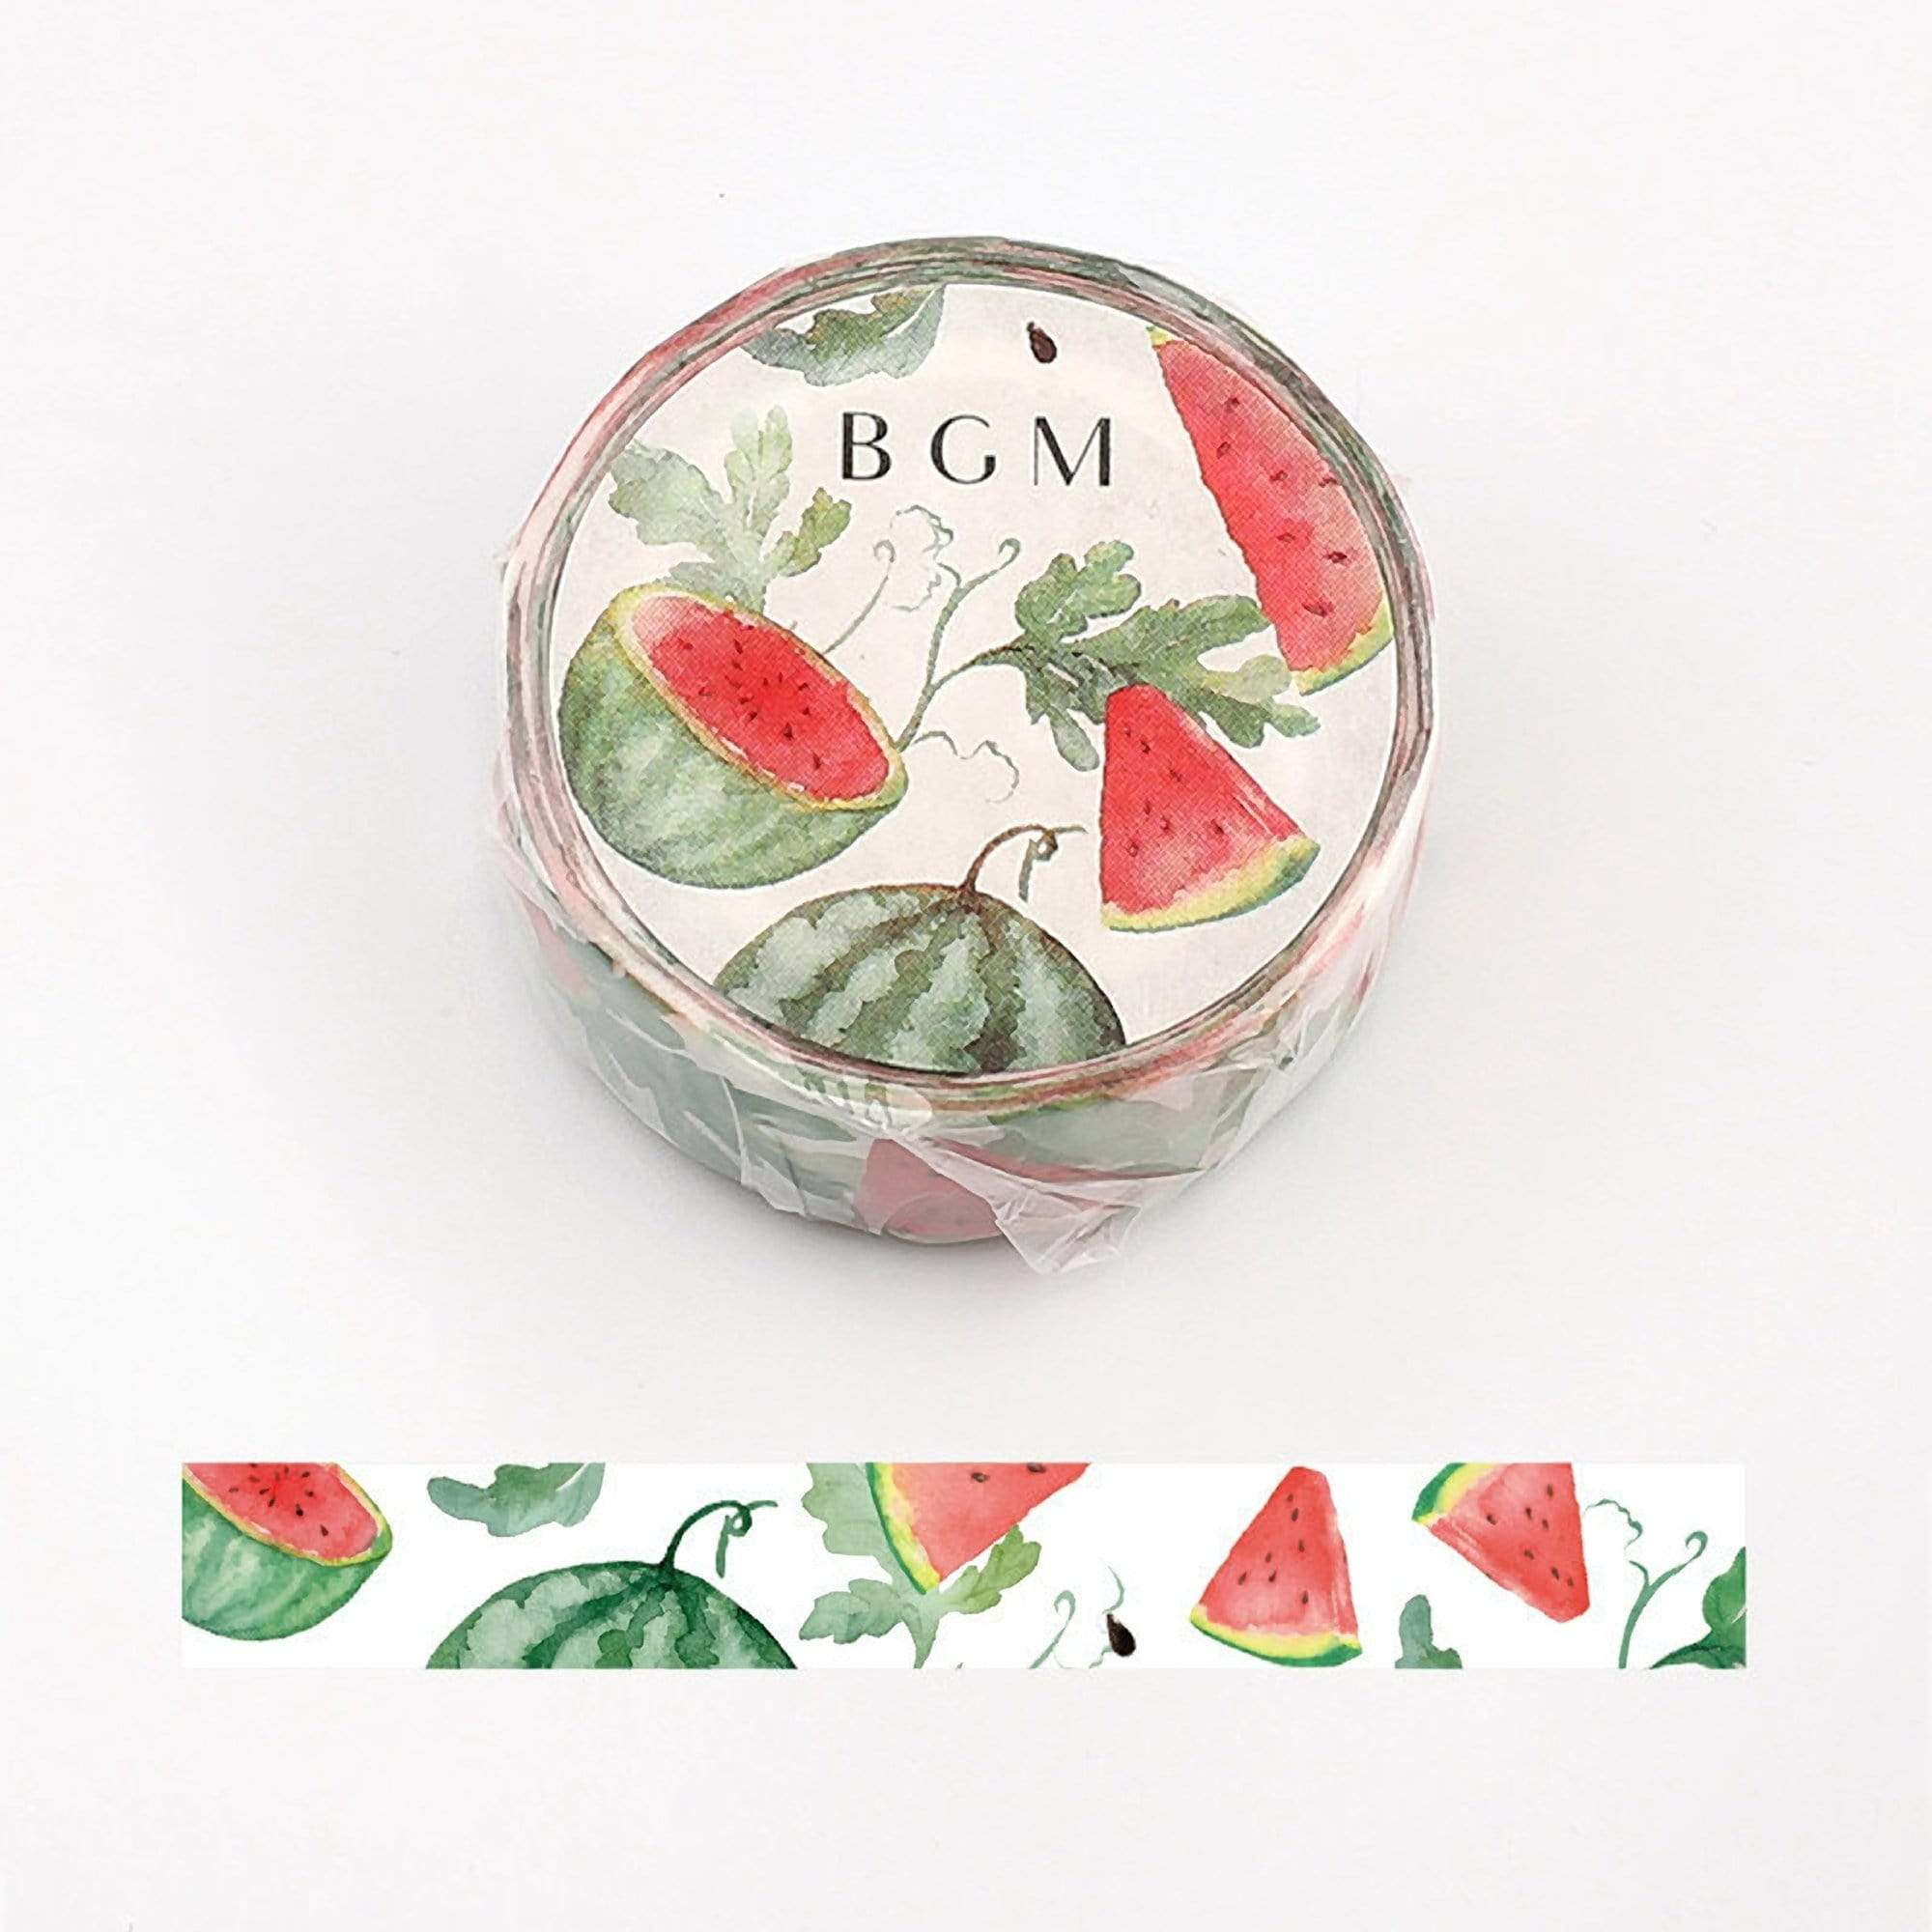 BGM Watermelon Fruit Washi Tape - The Stationery Life!